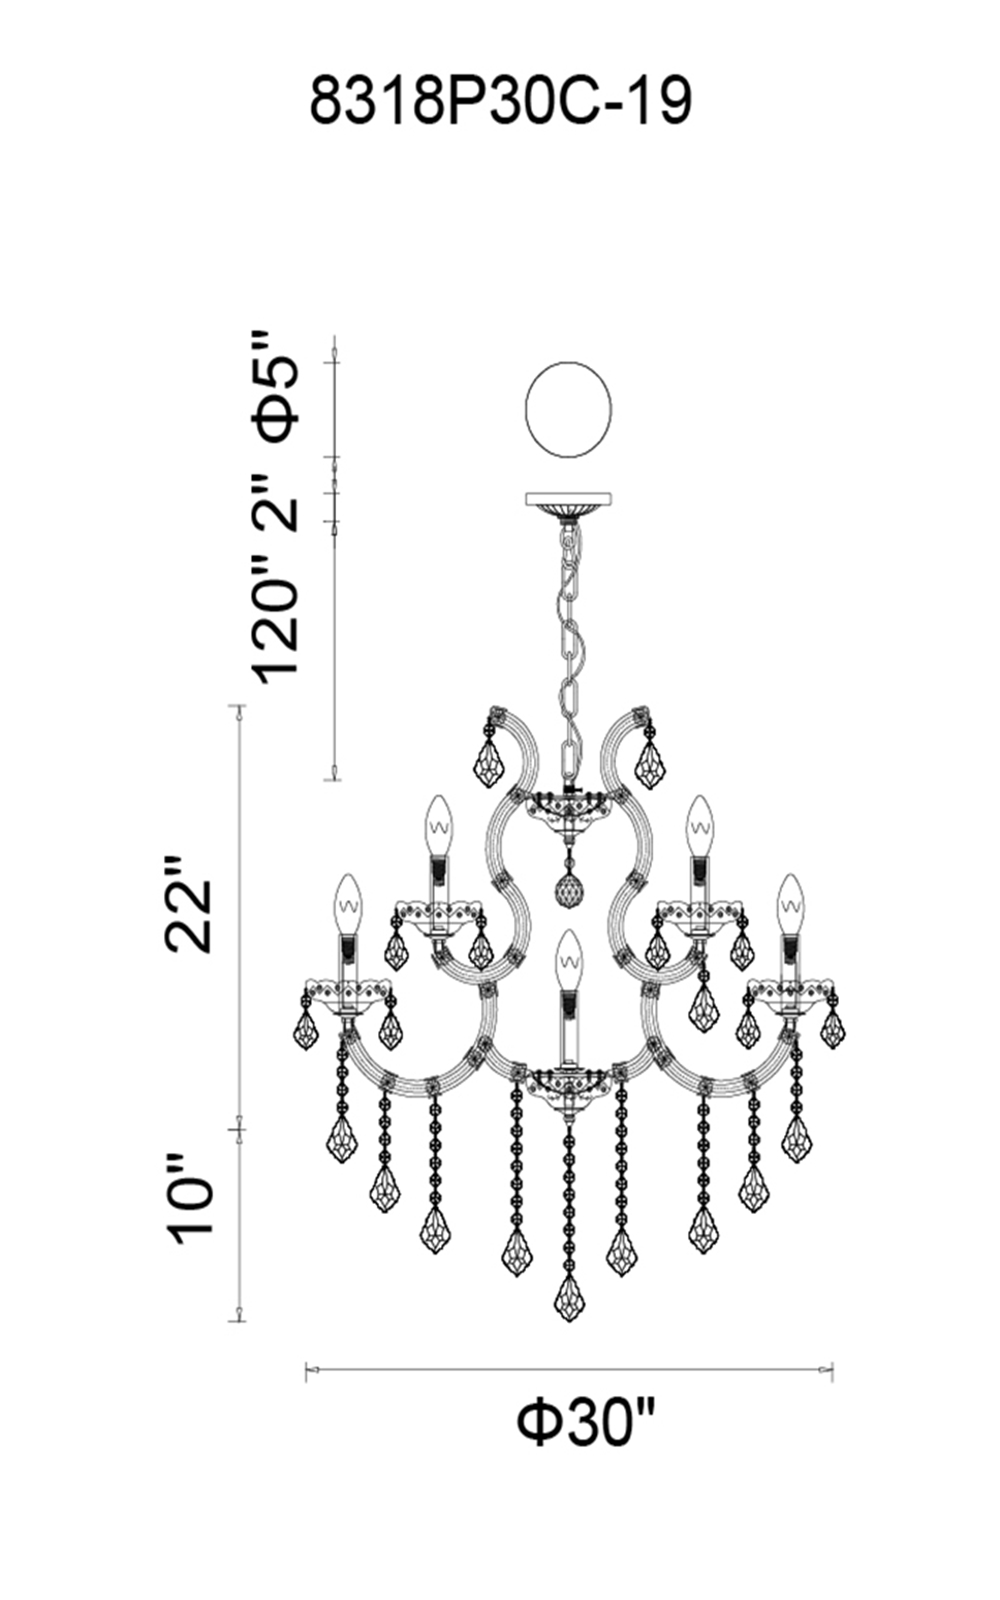 CWI Lighting Maria Theresa 19 Light Up Chandelier With Chrome Finish Model: 8318P30C-19 (CLEAR) Line Drawing